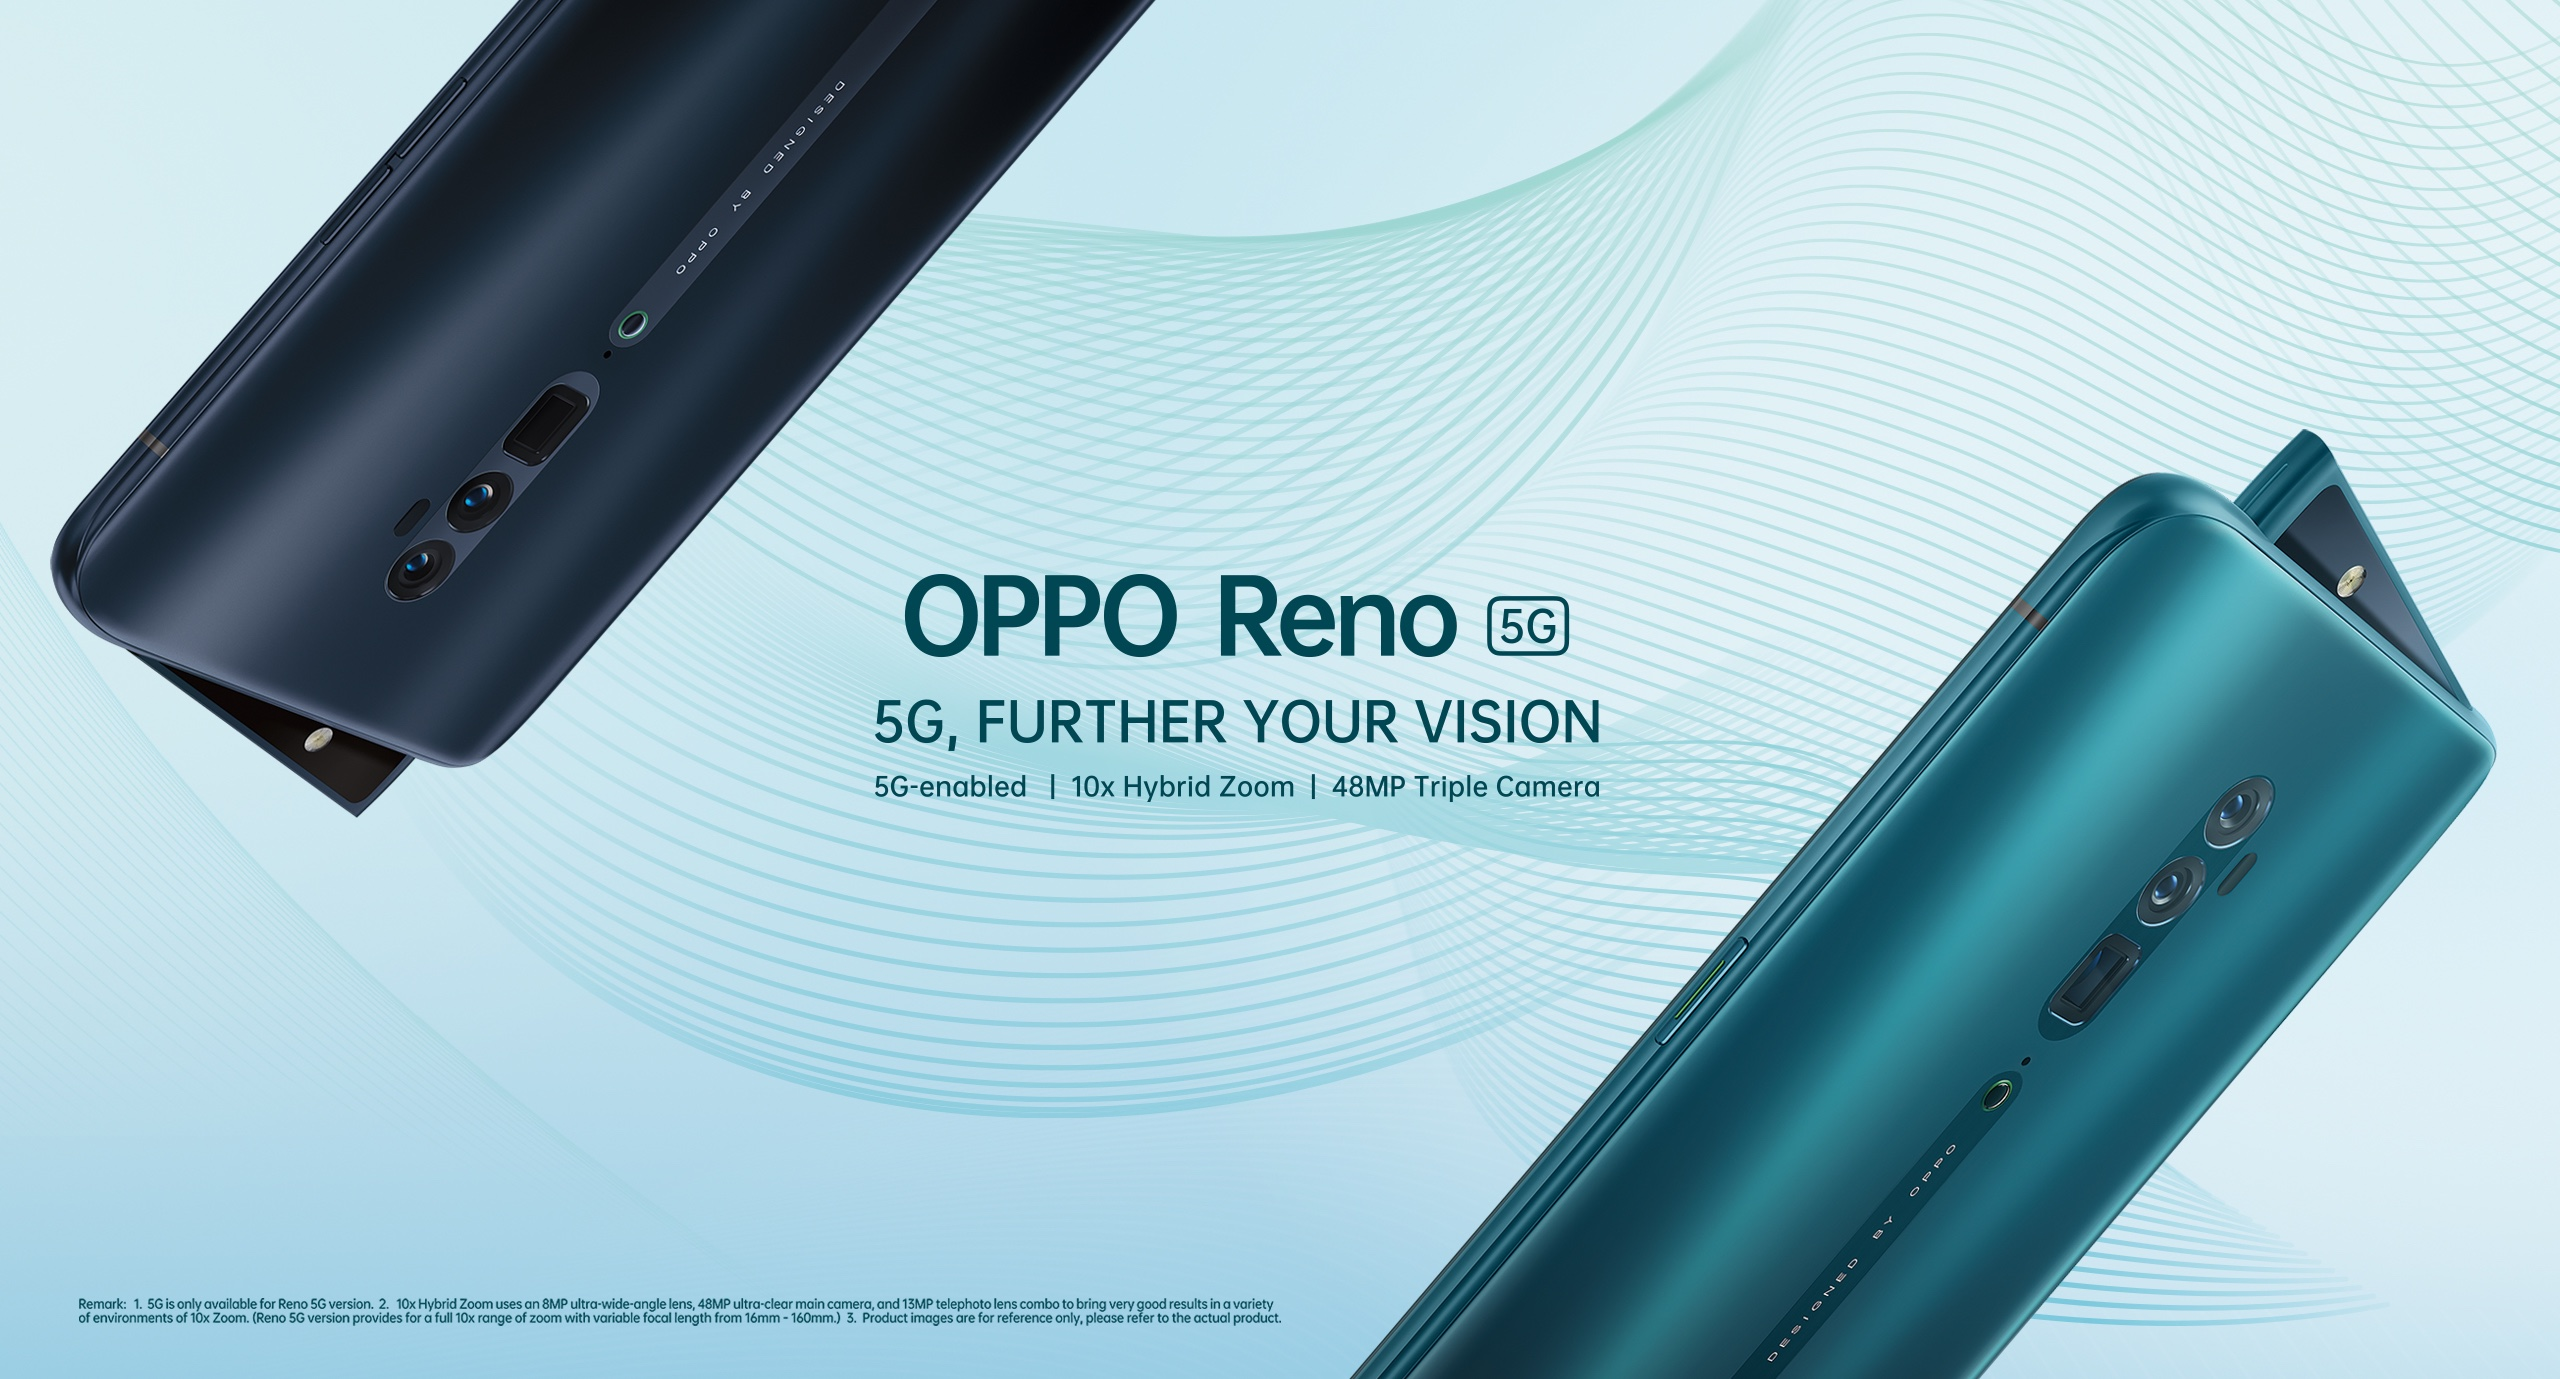 How to factory reset Android on your Oppo phone | OPPO Australia